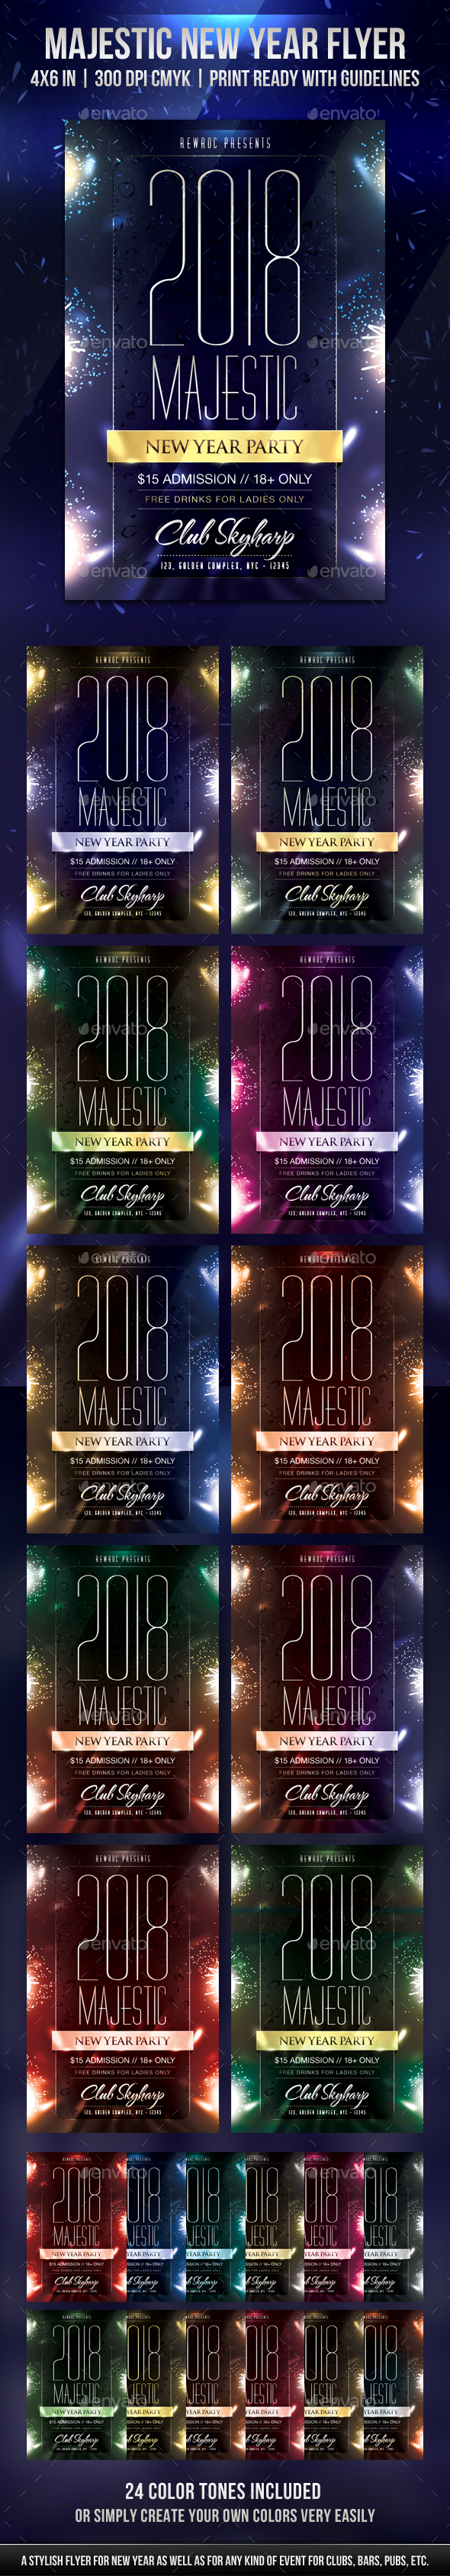 Majestic New Year Flyer - Holidays Events